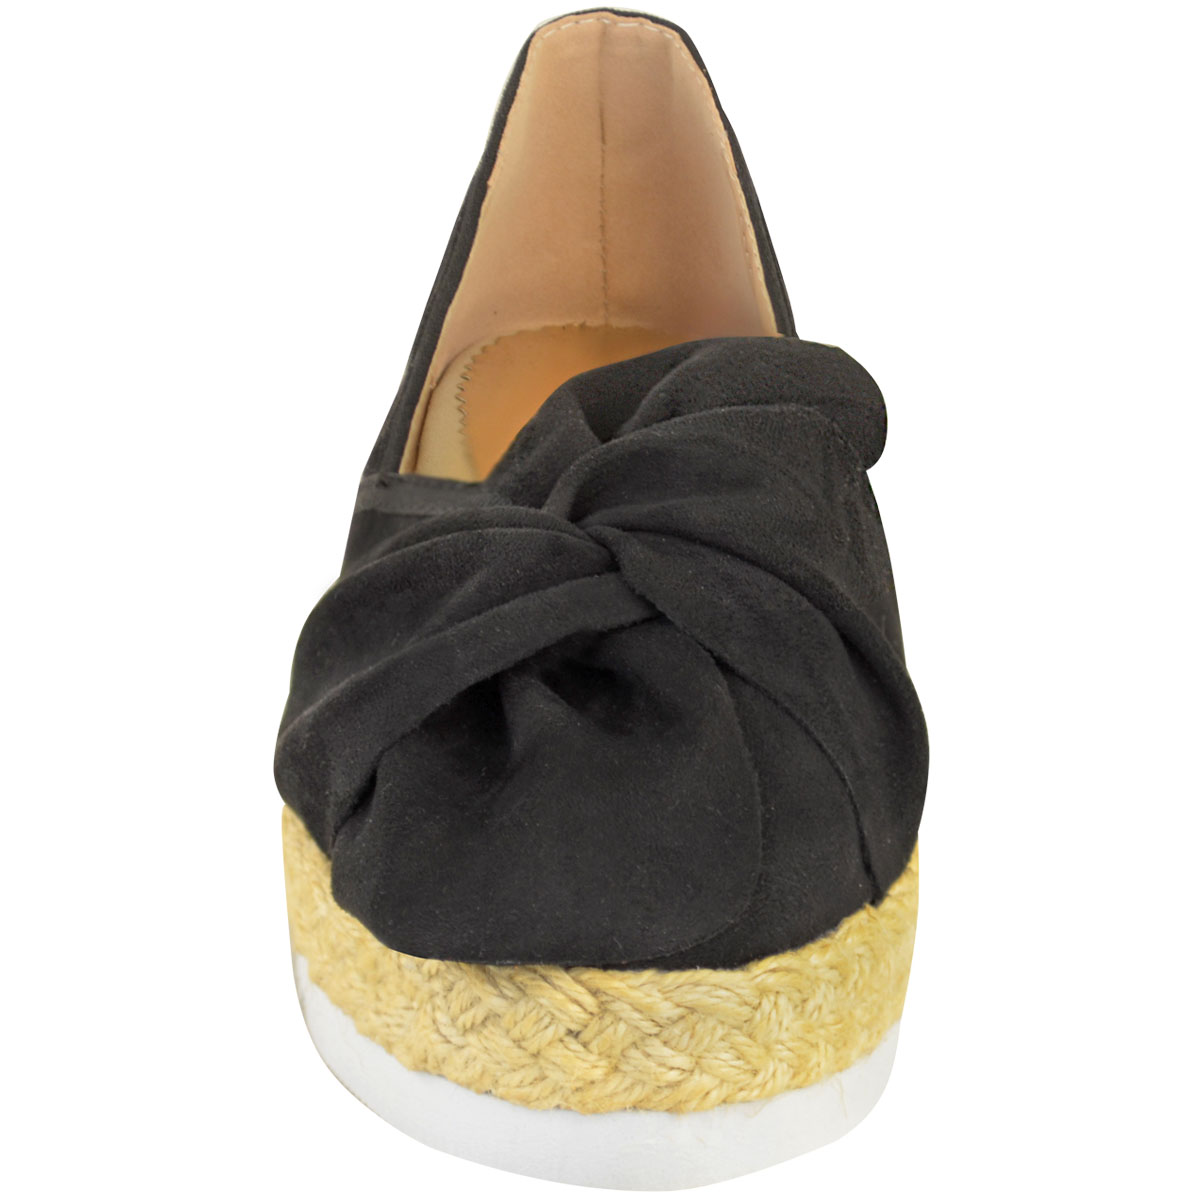 Womens-Ladies-Espadrilles-Flat-Pom-Pom-Sandals-Slip-On-Strappy-Comfy-Size-Shoes thumbnail 37